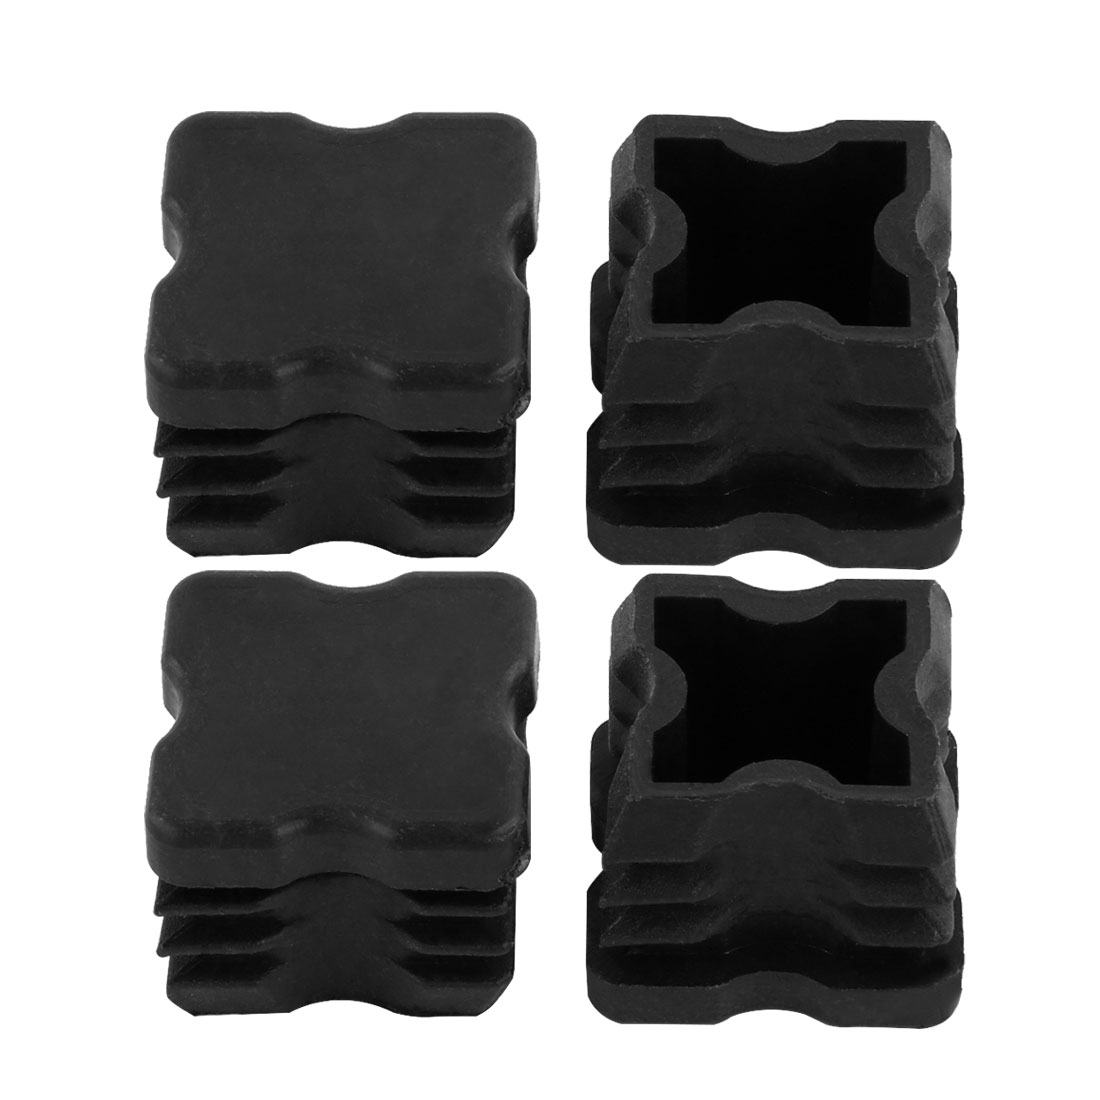 4 Pieces Black Plastic Square Angled Blanking End Caps Tubing Tube Inserts 25mm x 25mm